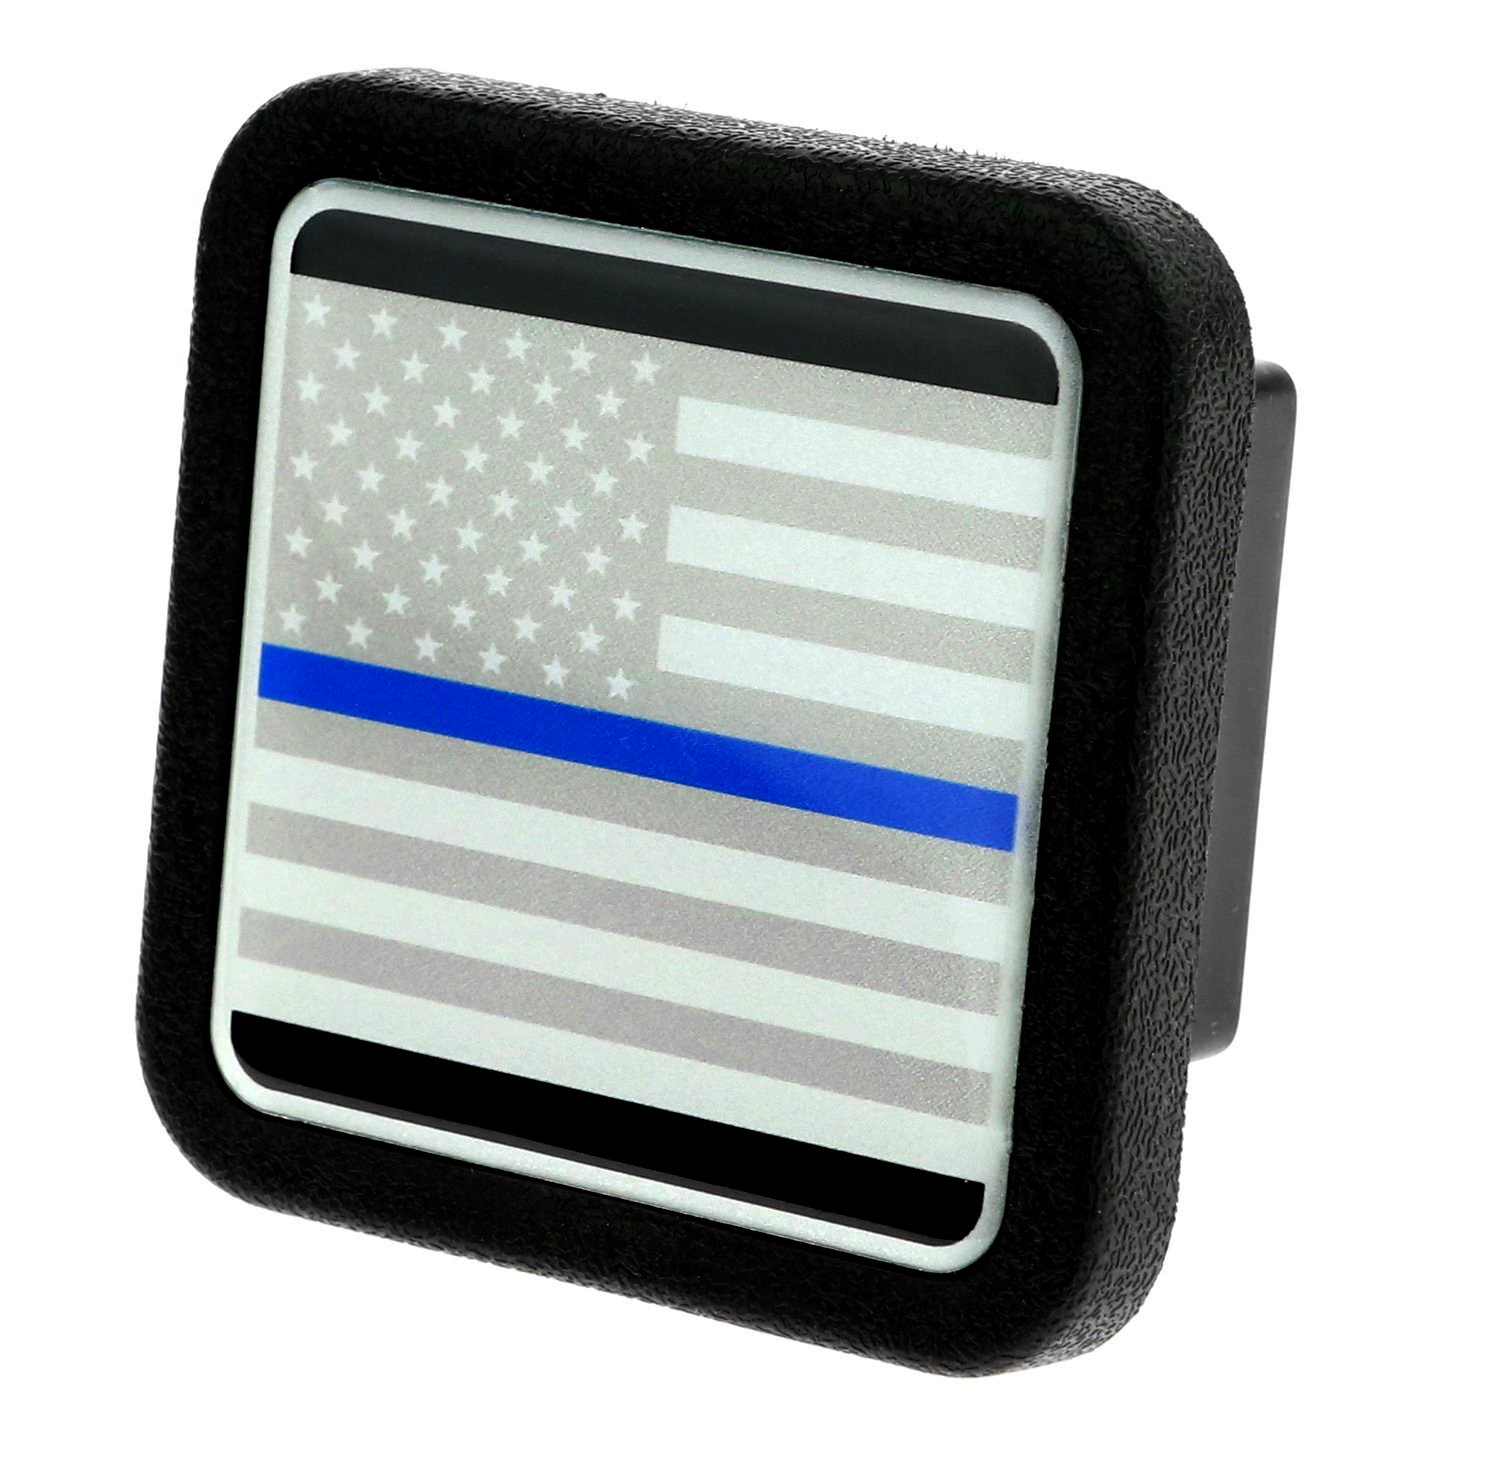 Trailer Hitch Cover Plug Insert (Fits 2'' Receivers, USA flag with Thin blue line) by eVerHITCH